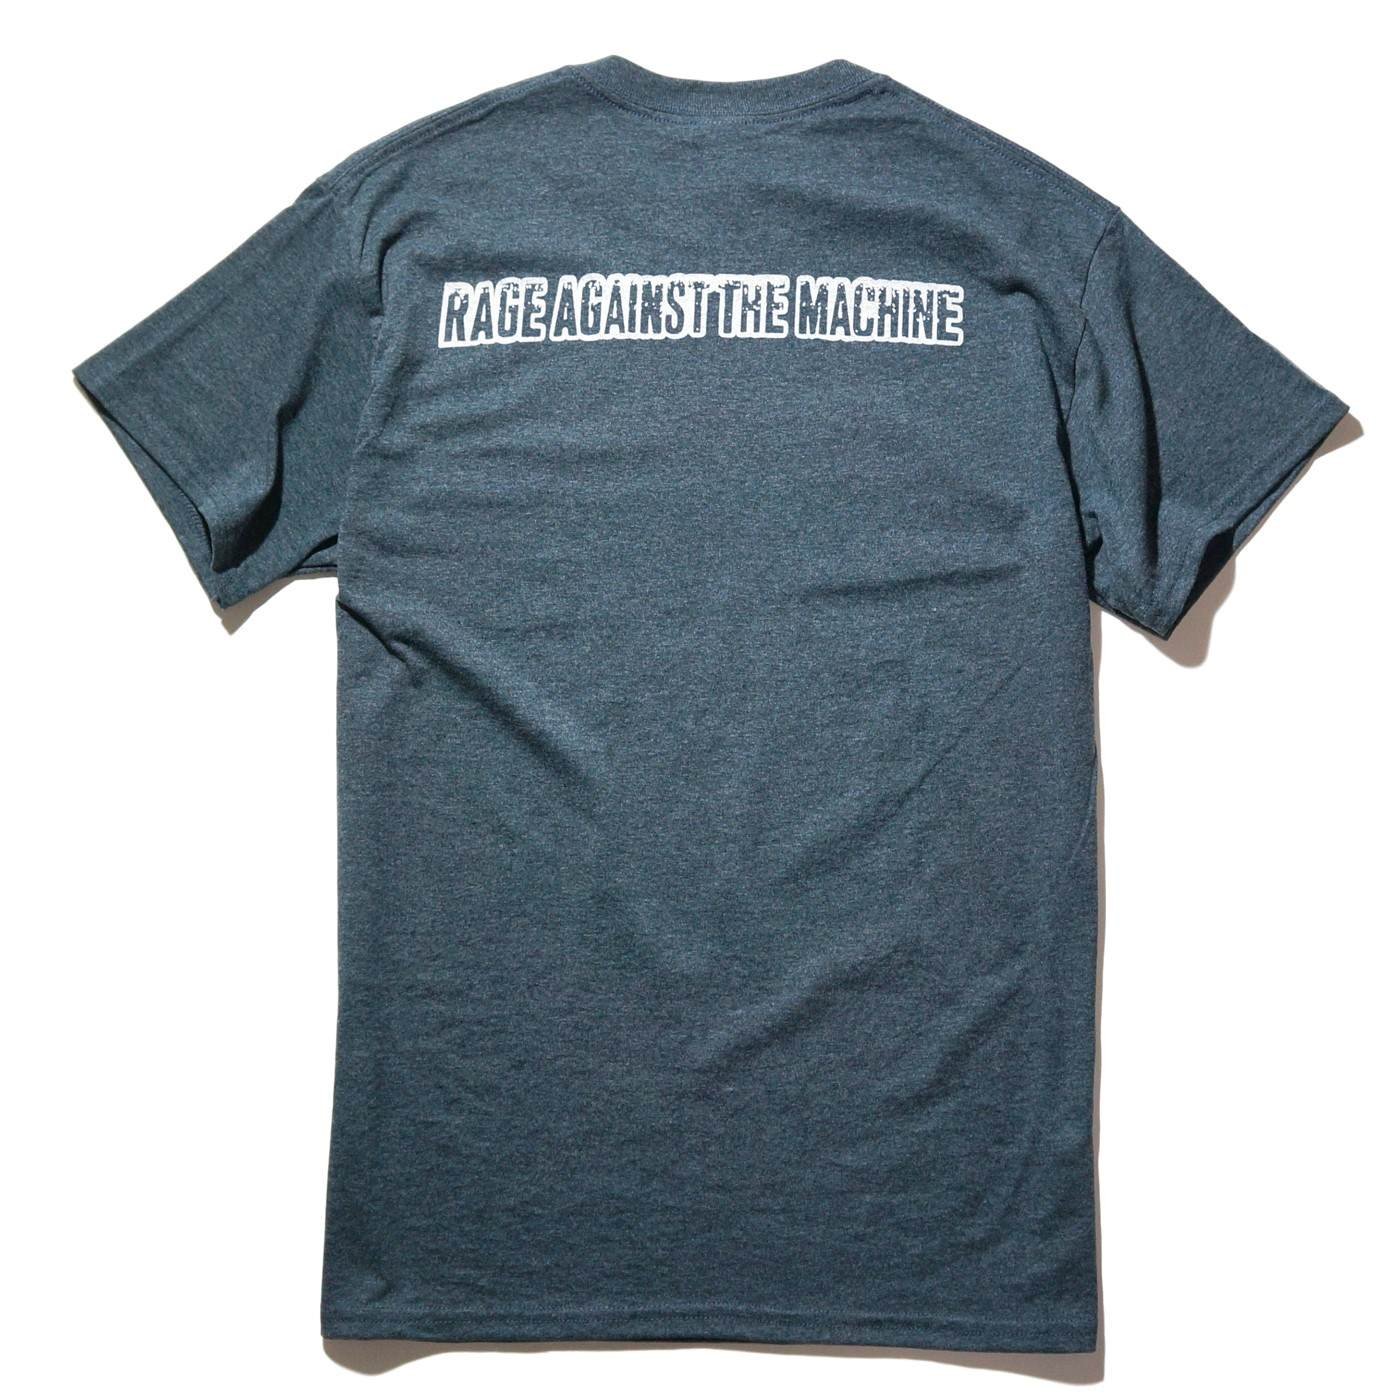 RAGE AGAINST THE MACHINE Tシャツ Who Laughs Last-Heather Gray